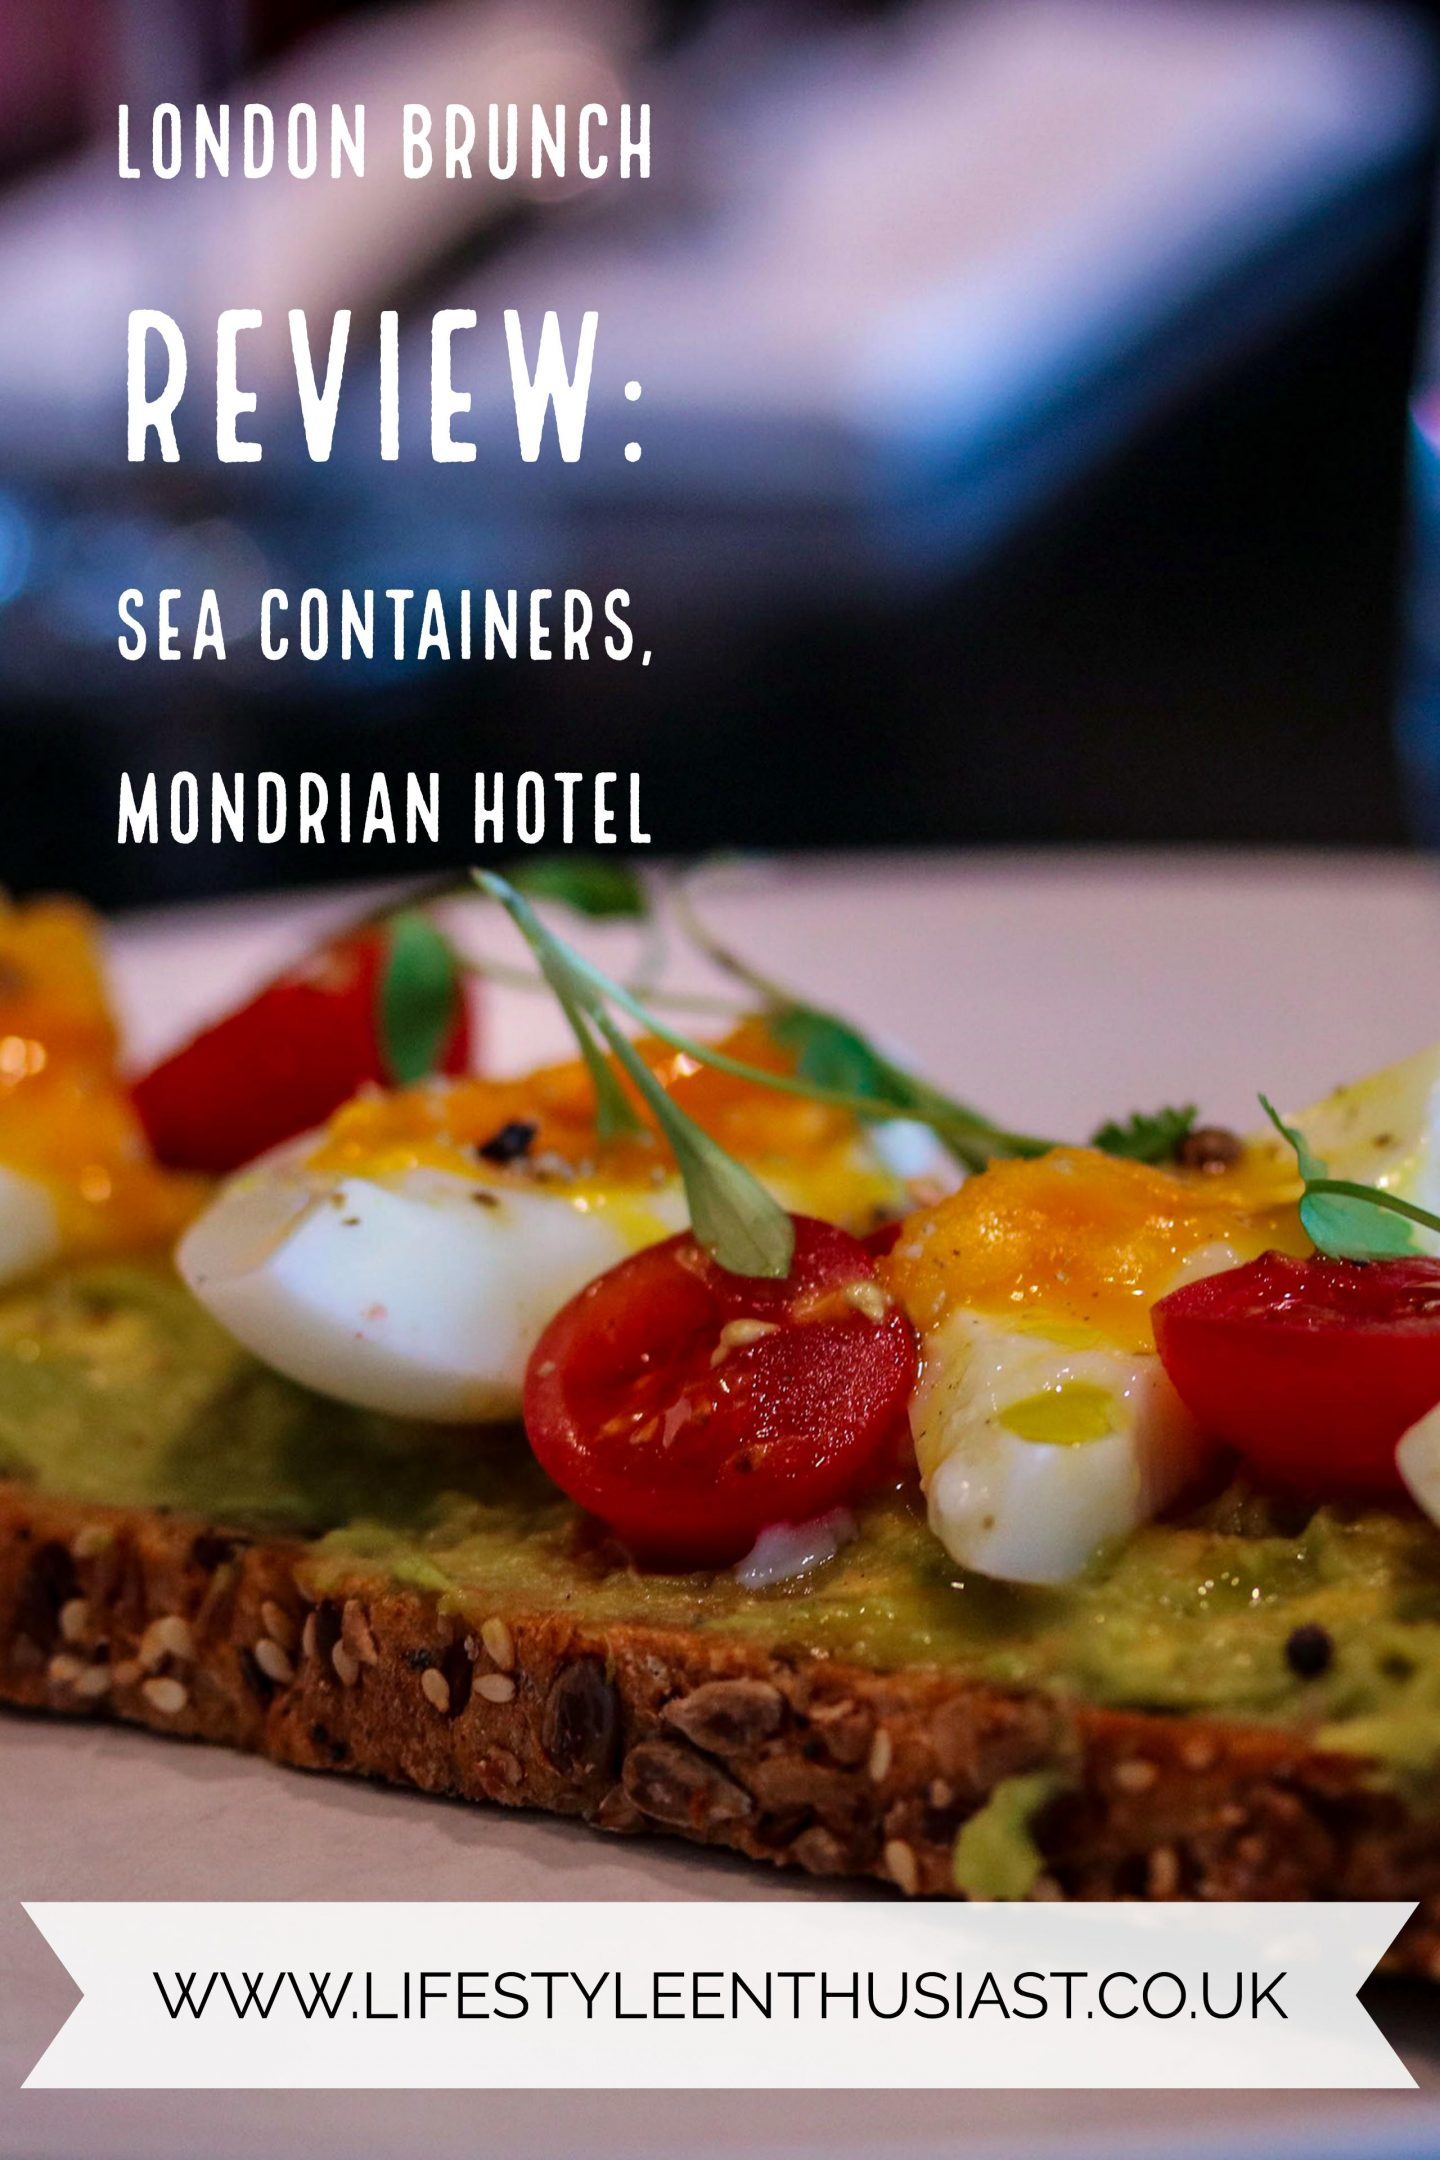 Lifestyle Enthusiast Blog, Brunch Review of Sea Containers at the Mondrian Hotel - Pinterest Button